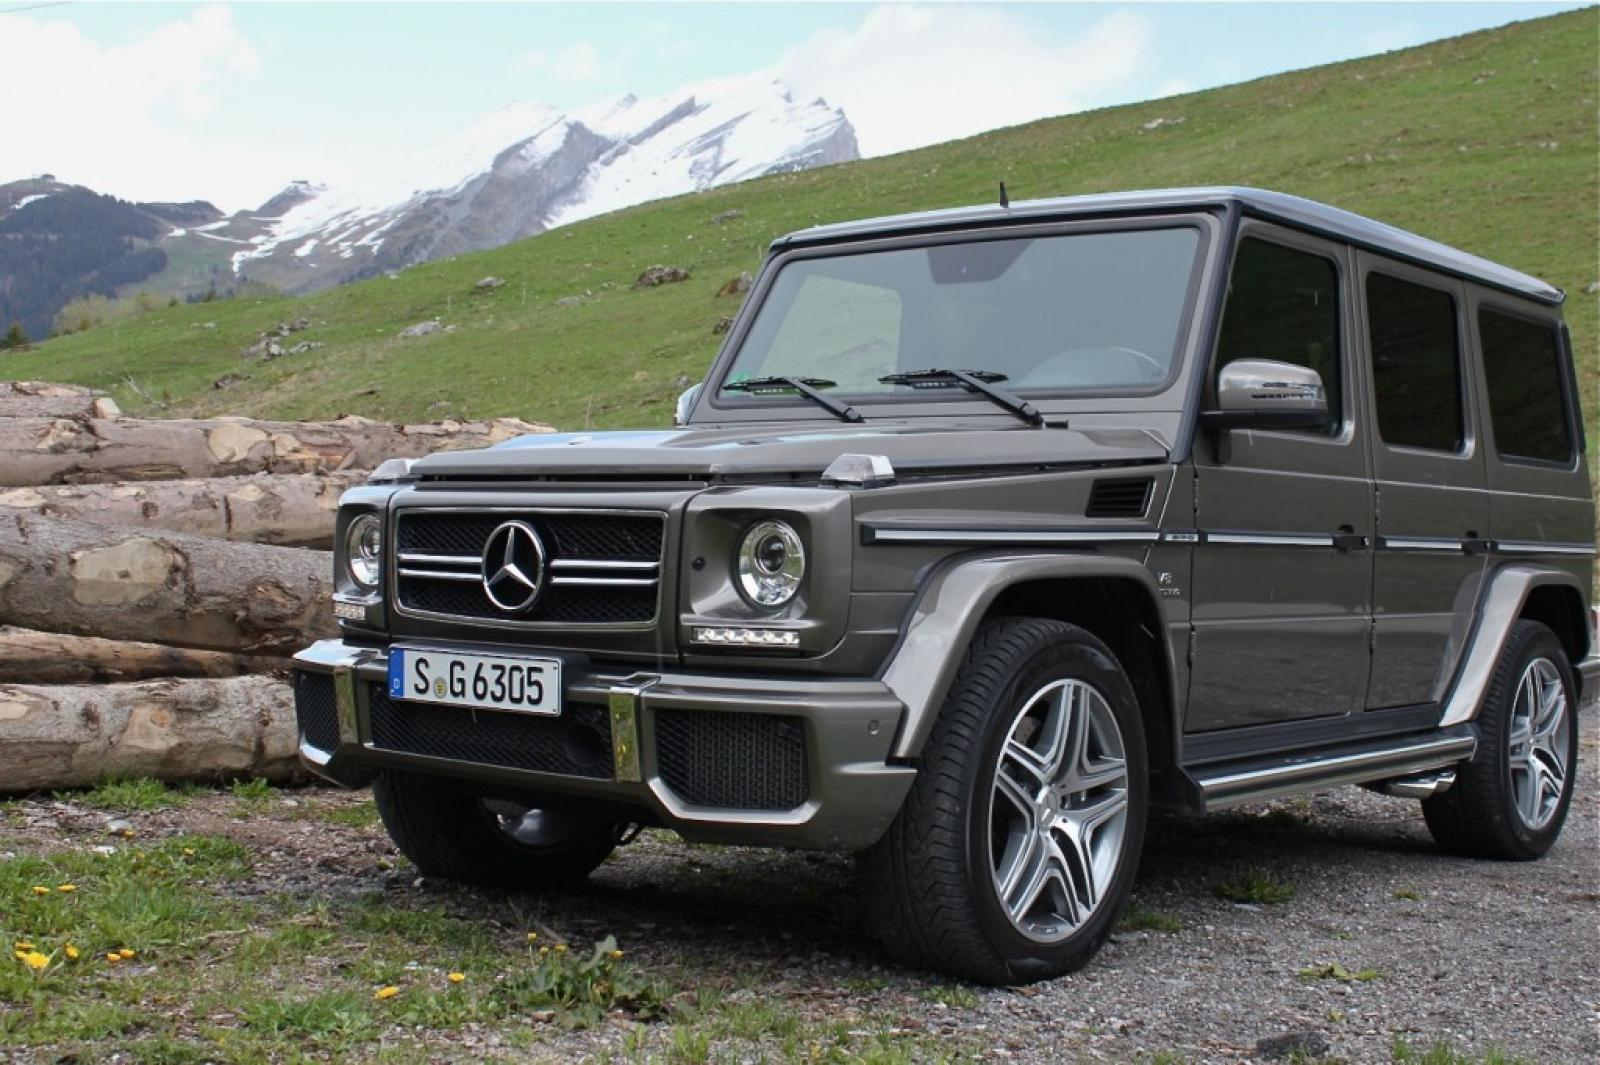 2008 mercedes benz g class information and photos zombiedrive. Black Bedroom Furniture Sets. Home Design Ideas